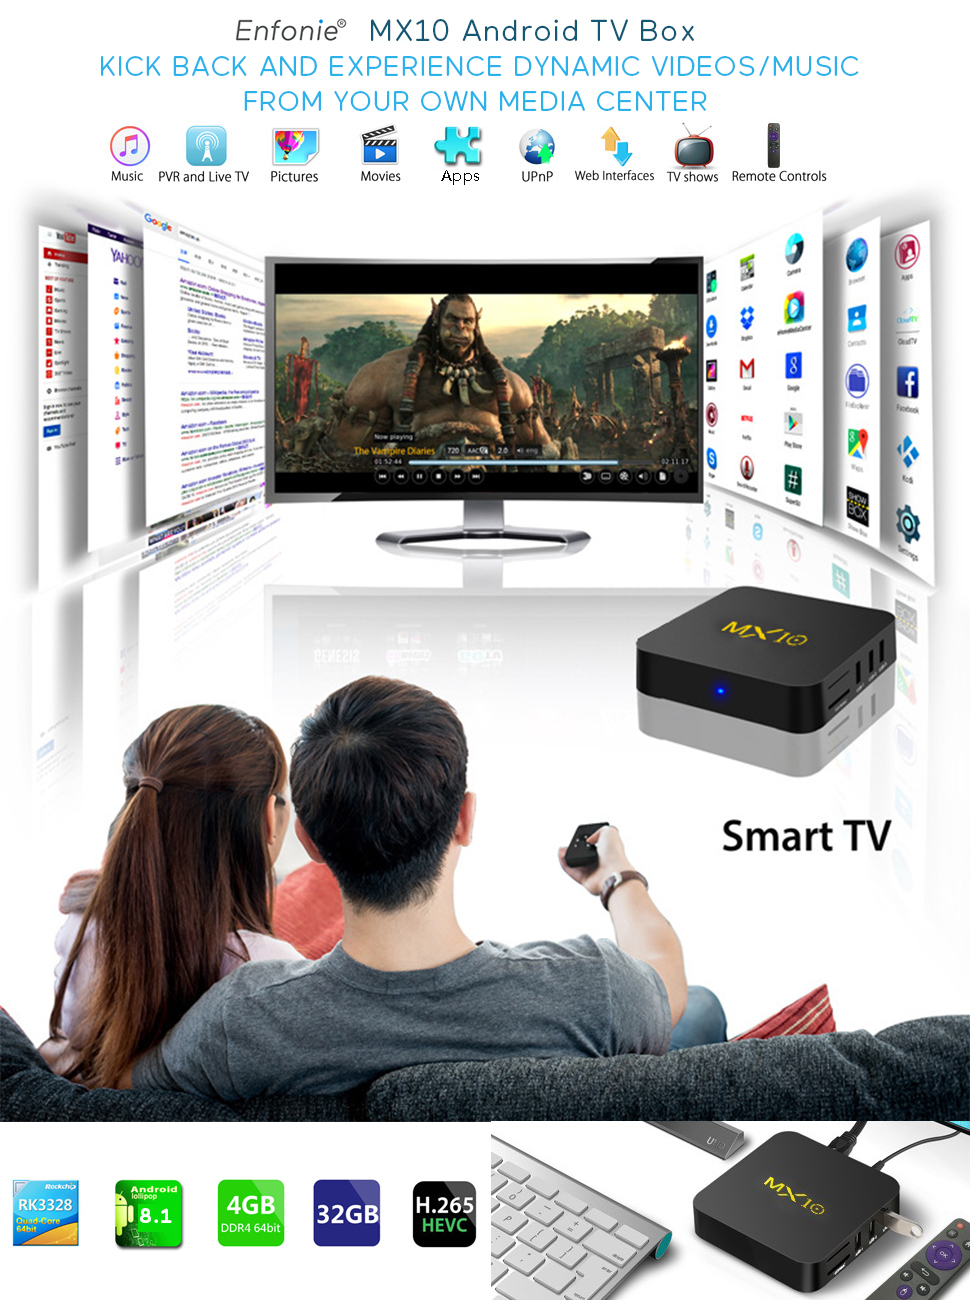 amazon com android tv box 8 1, mx10 android tv box with quad coreenfonie mx10 tv box comes with the excellent quad core processor and integrated with 4gb ddr4 32gb emmc, provides you smooth experience to watch videos or